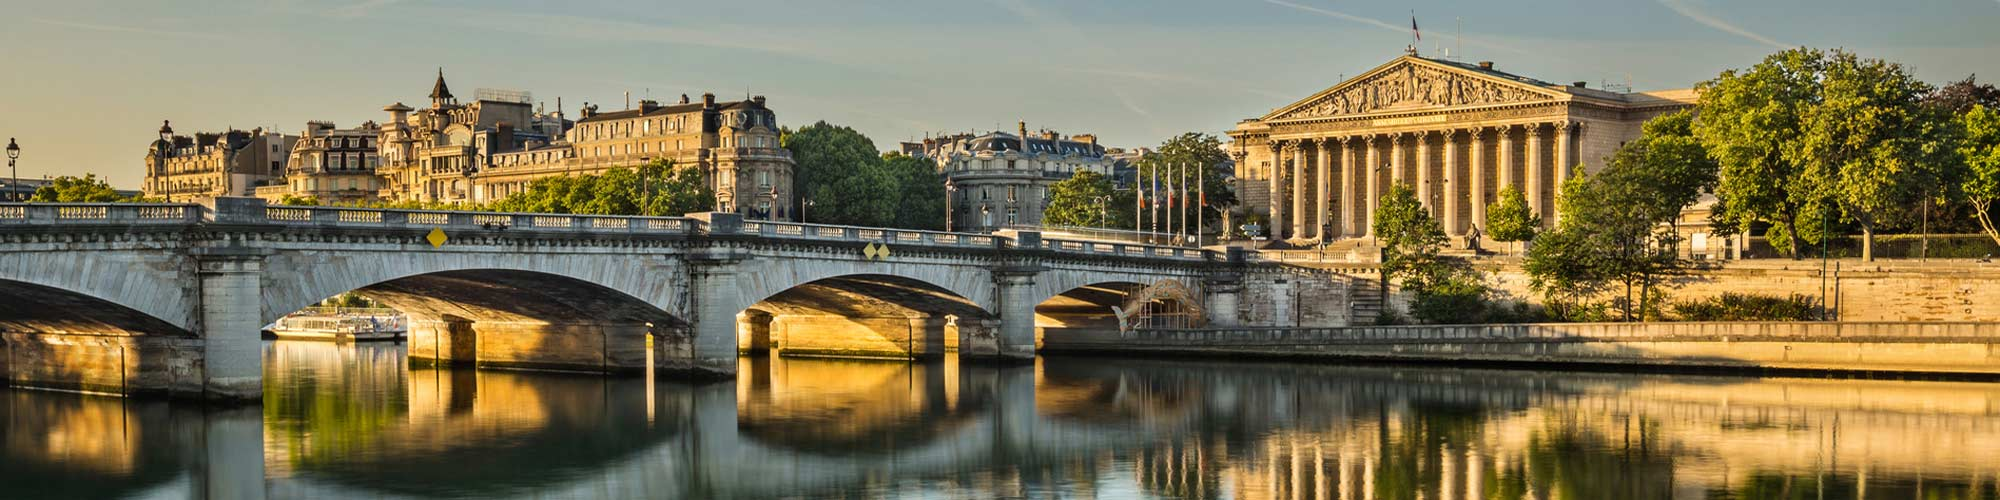 View of the Seine river - Central Paris